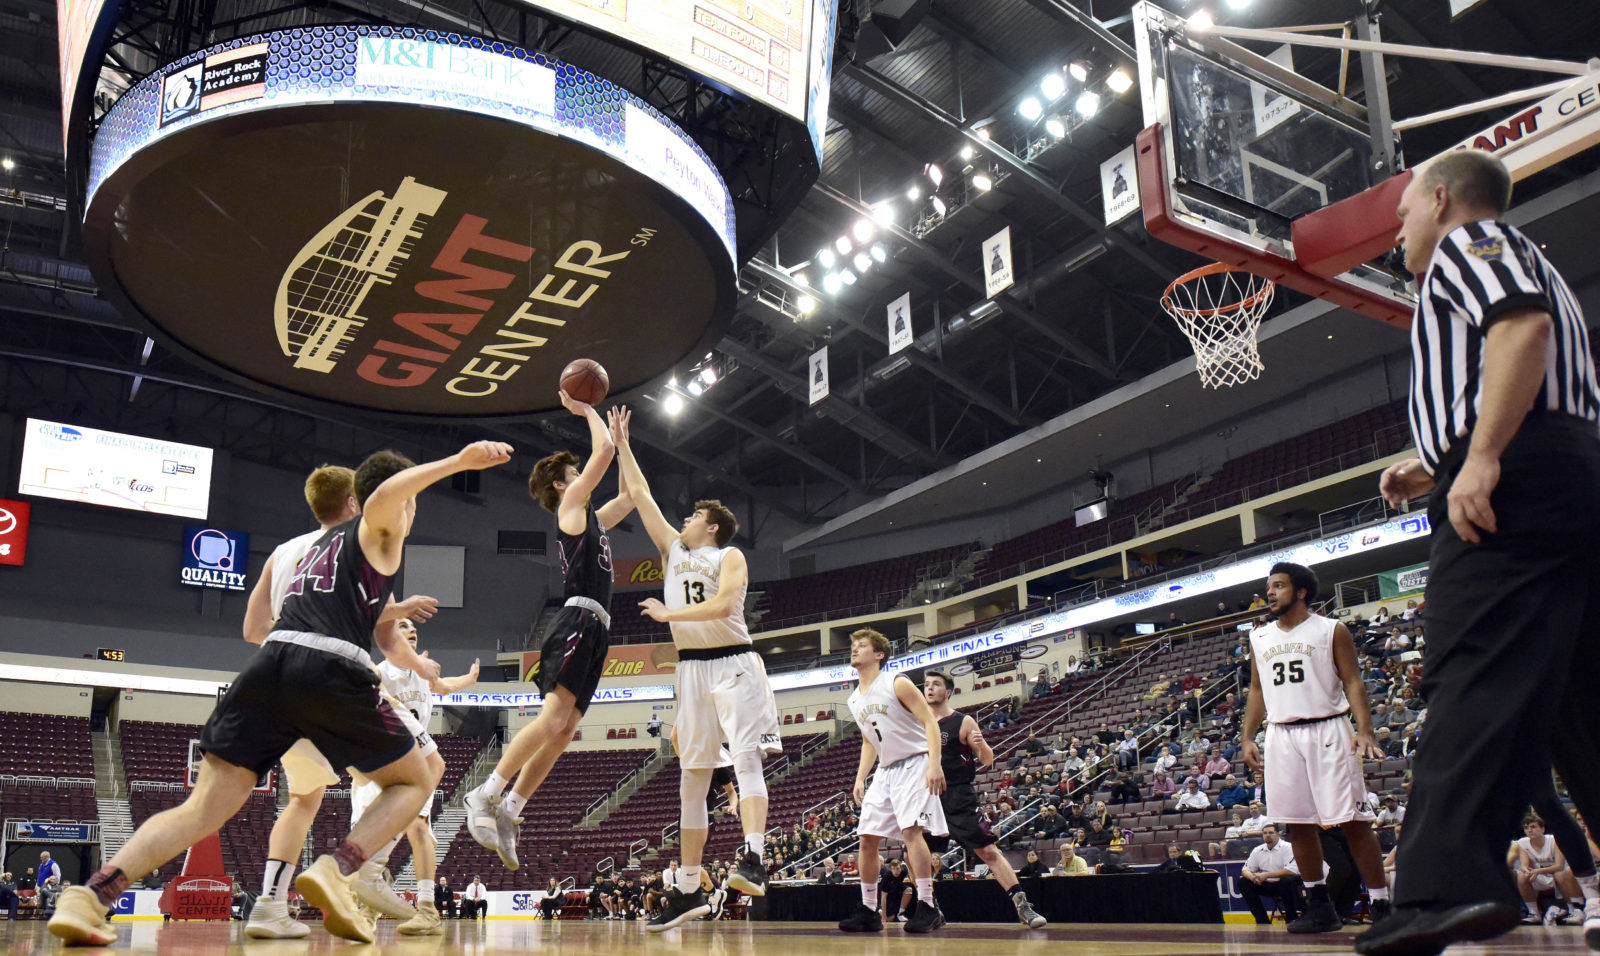 Lancaster Country Day vs Halifax-D3 1A Boys Championships